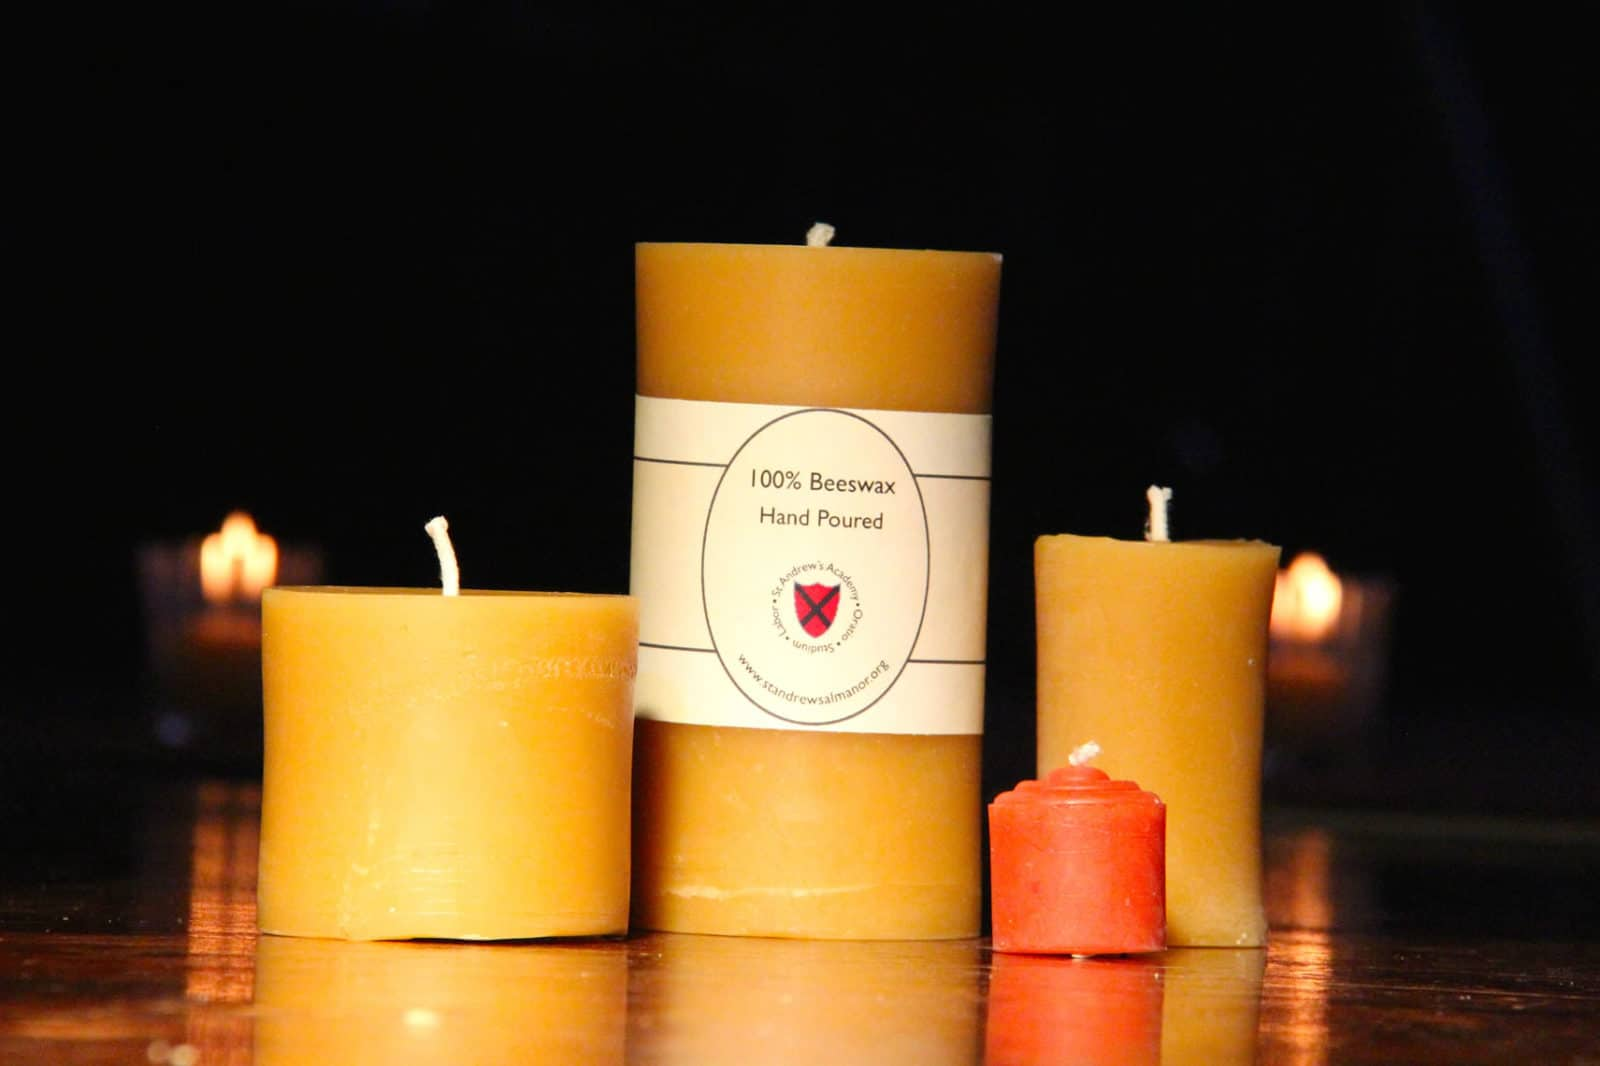 100% Beeswax Candles from St Andrews, Lake Almanor